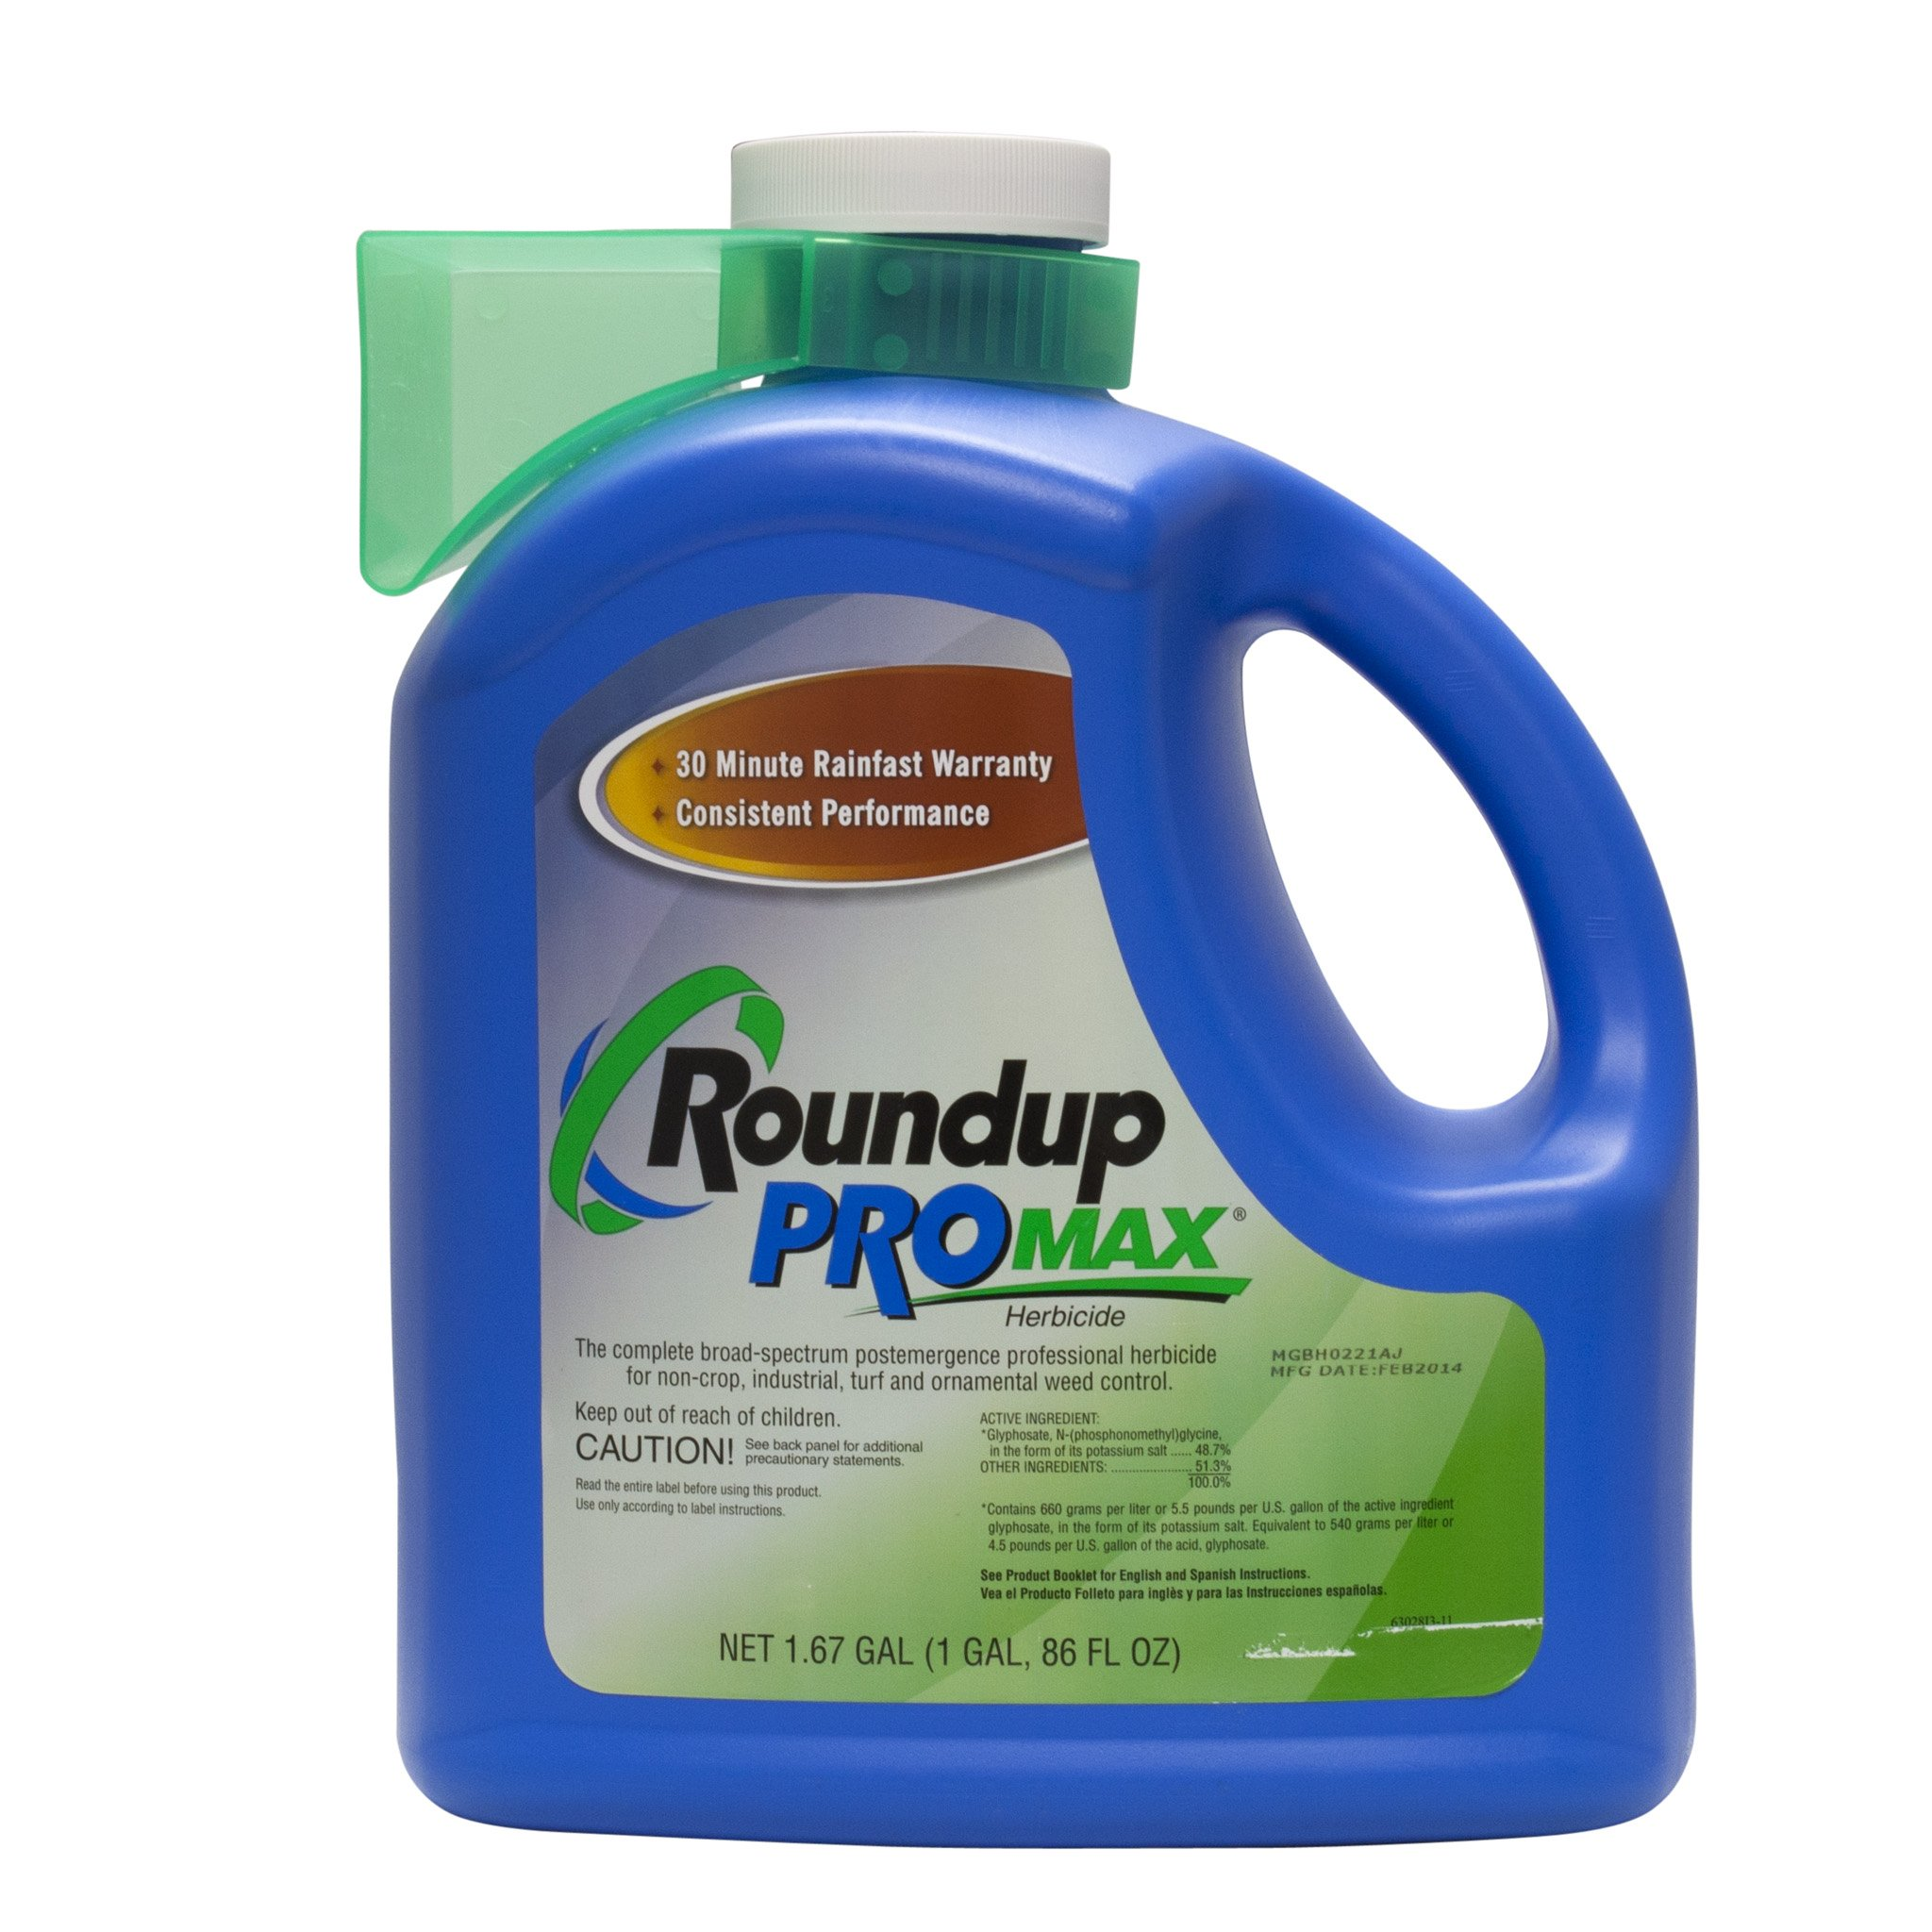 Roundup ProMAX 1.67 gallon 780671